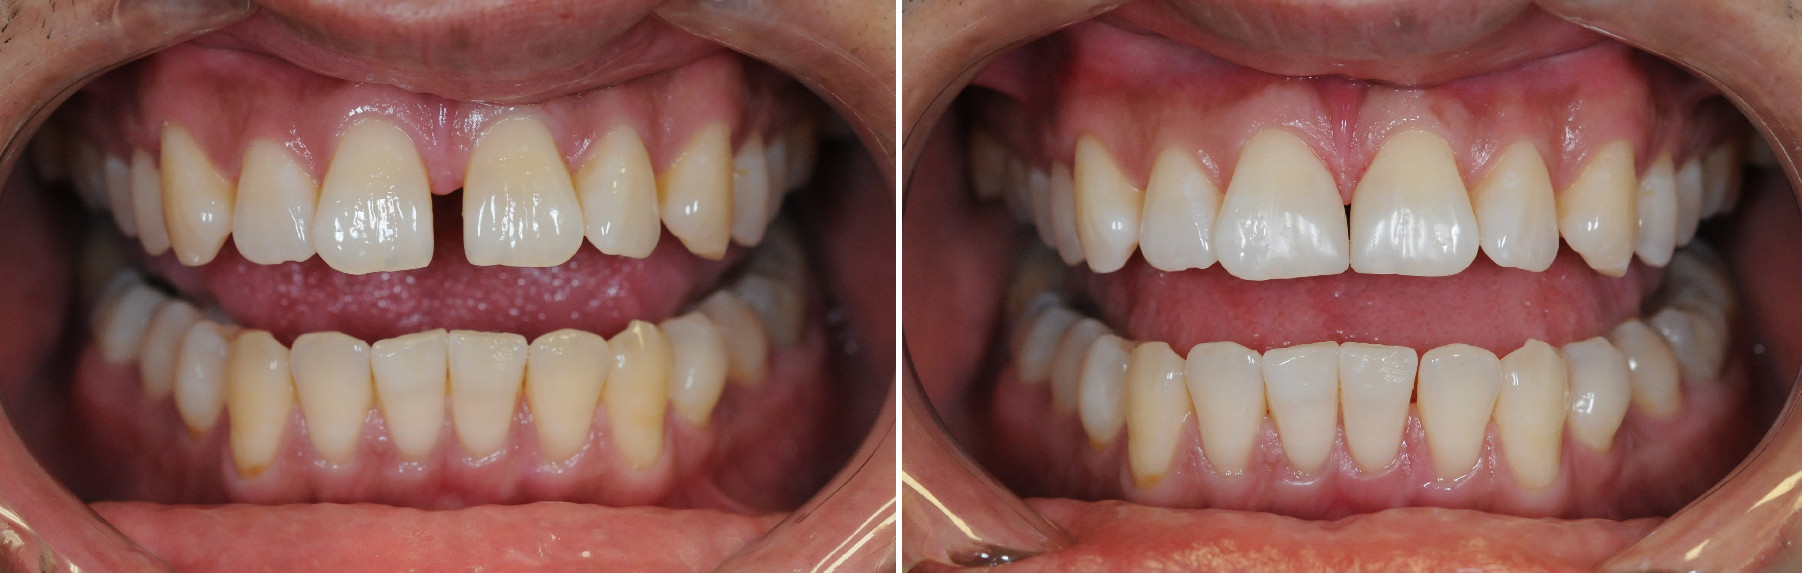 Bonding Case 4 Before & After